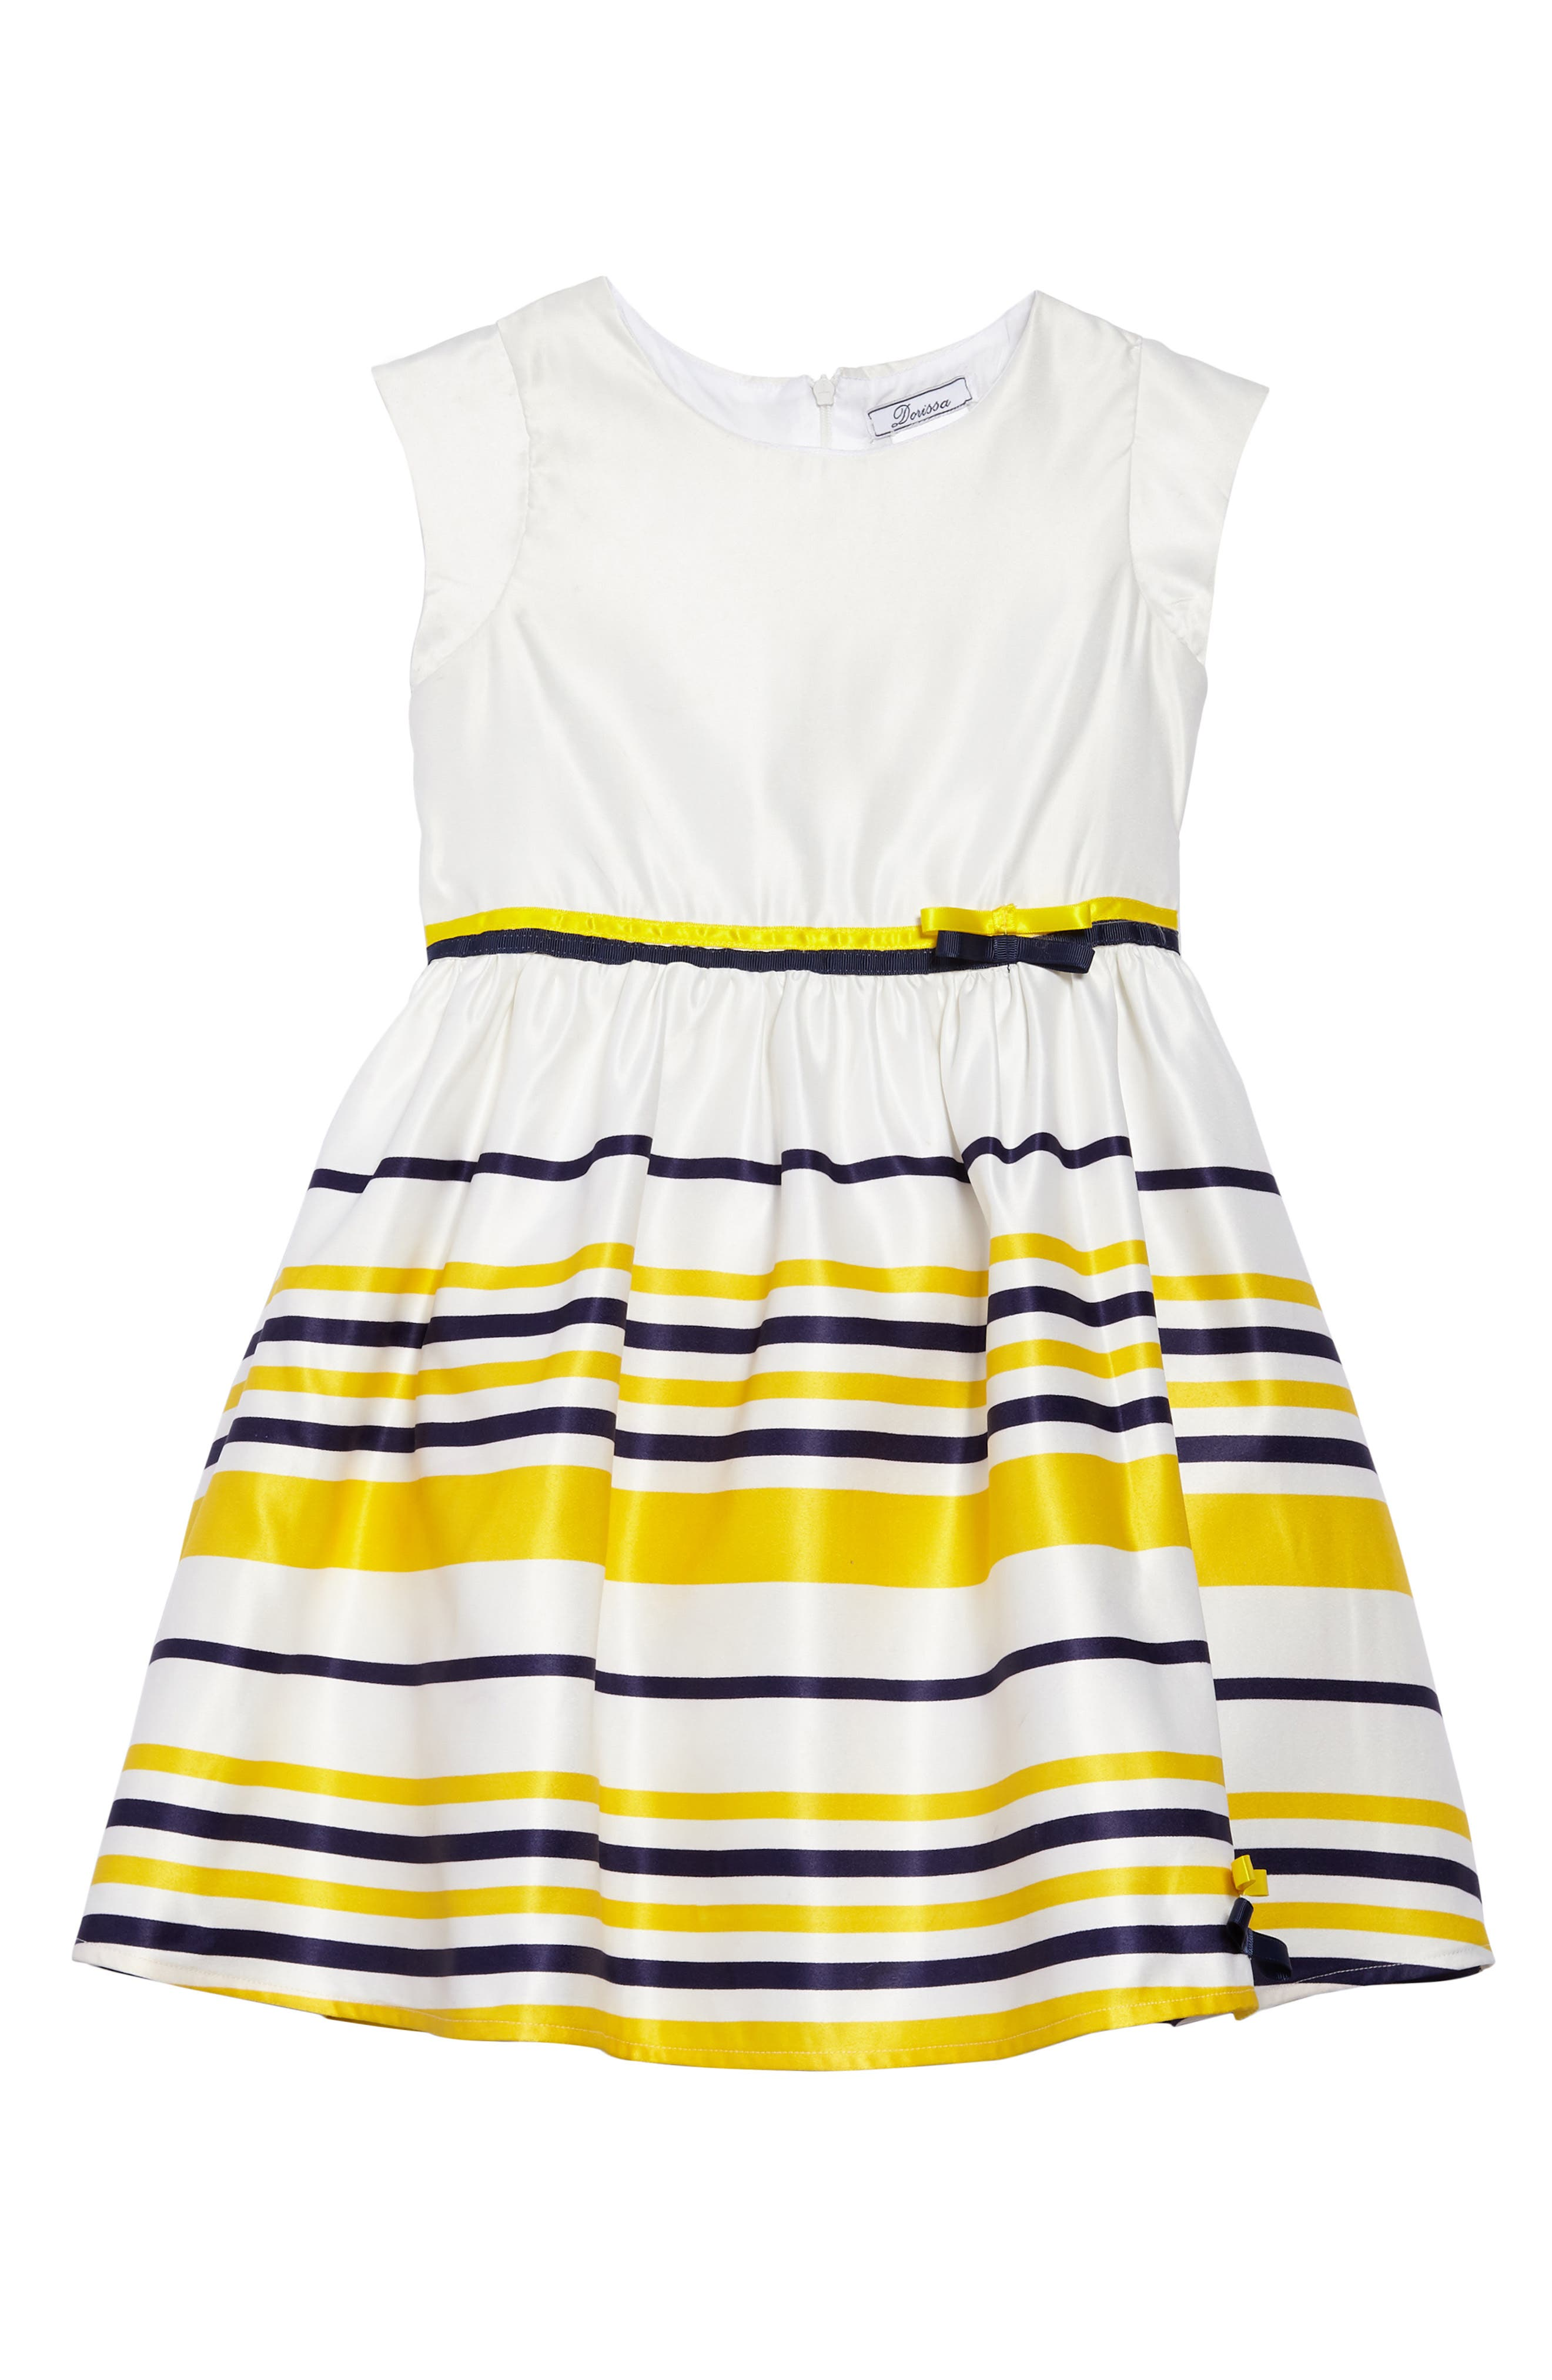 Carly Sleeveless Dress,                         Main,                         color, White/ Multi